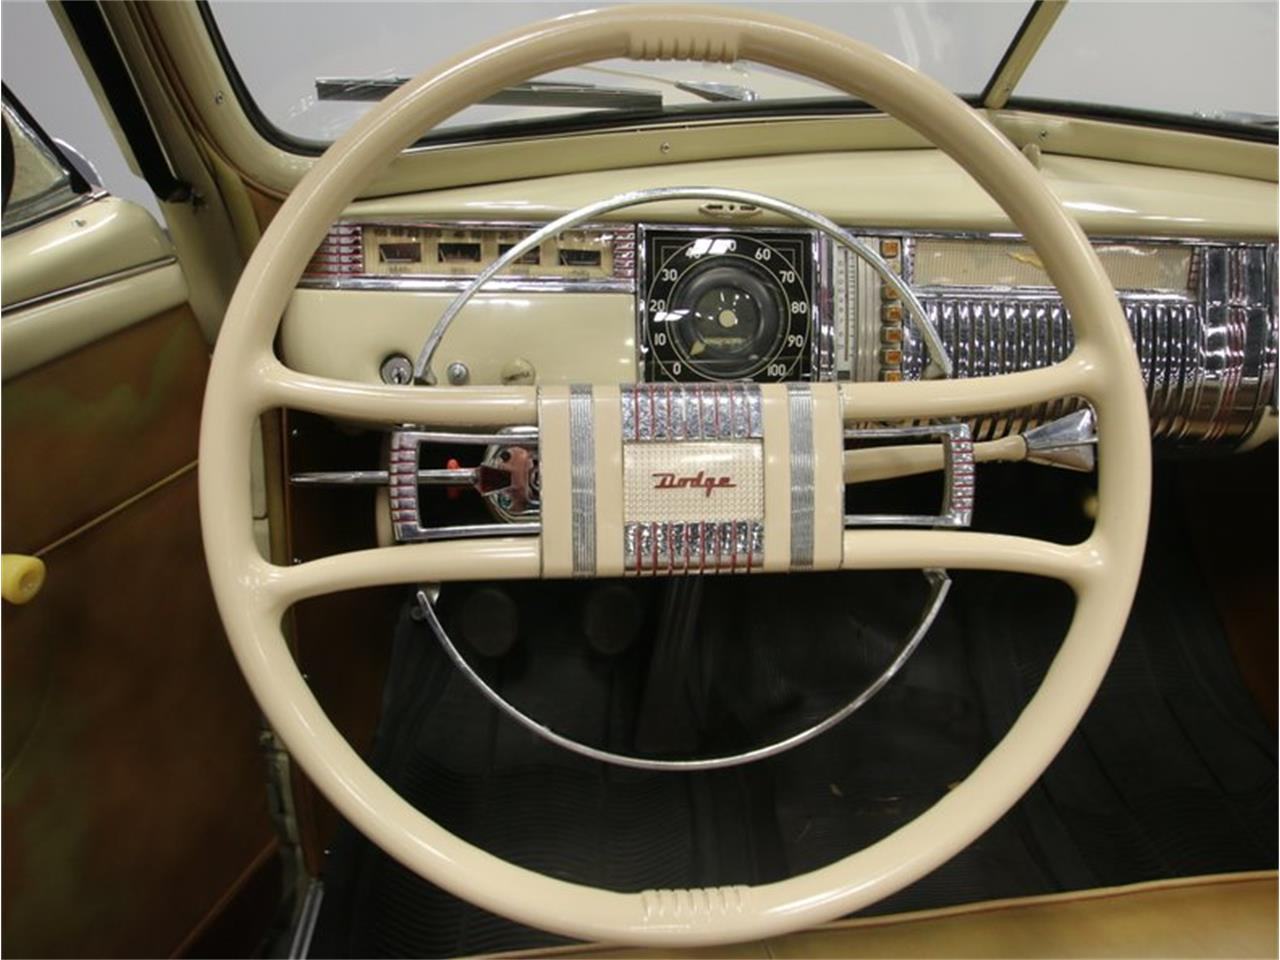 Large Picture of Classic 1941 Dodge Luxury Liner - $49,995.00 Offered by Streetside Classics - Nashville - LKP6